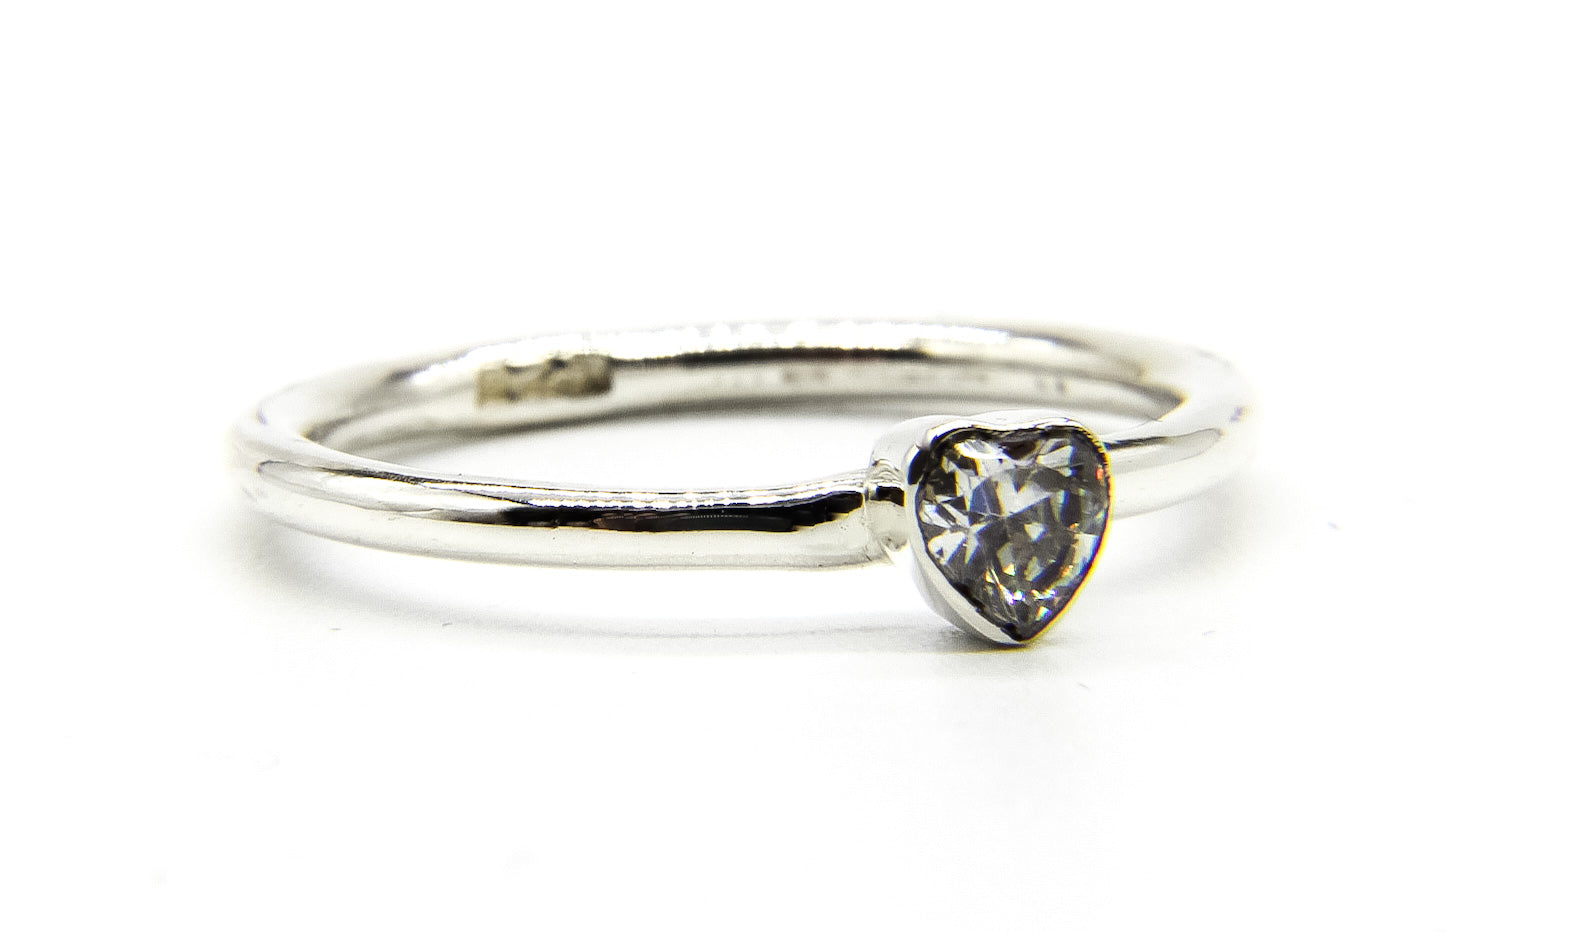 925 Sterling Silver Stacking Ring with Heart Shaped CZ Crystal - Ben's Beach Jewellery